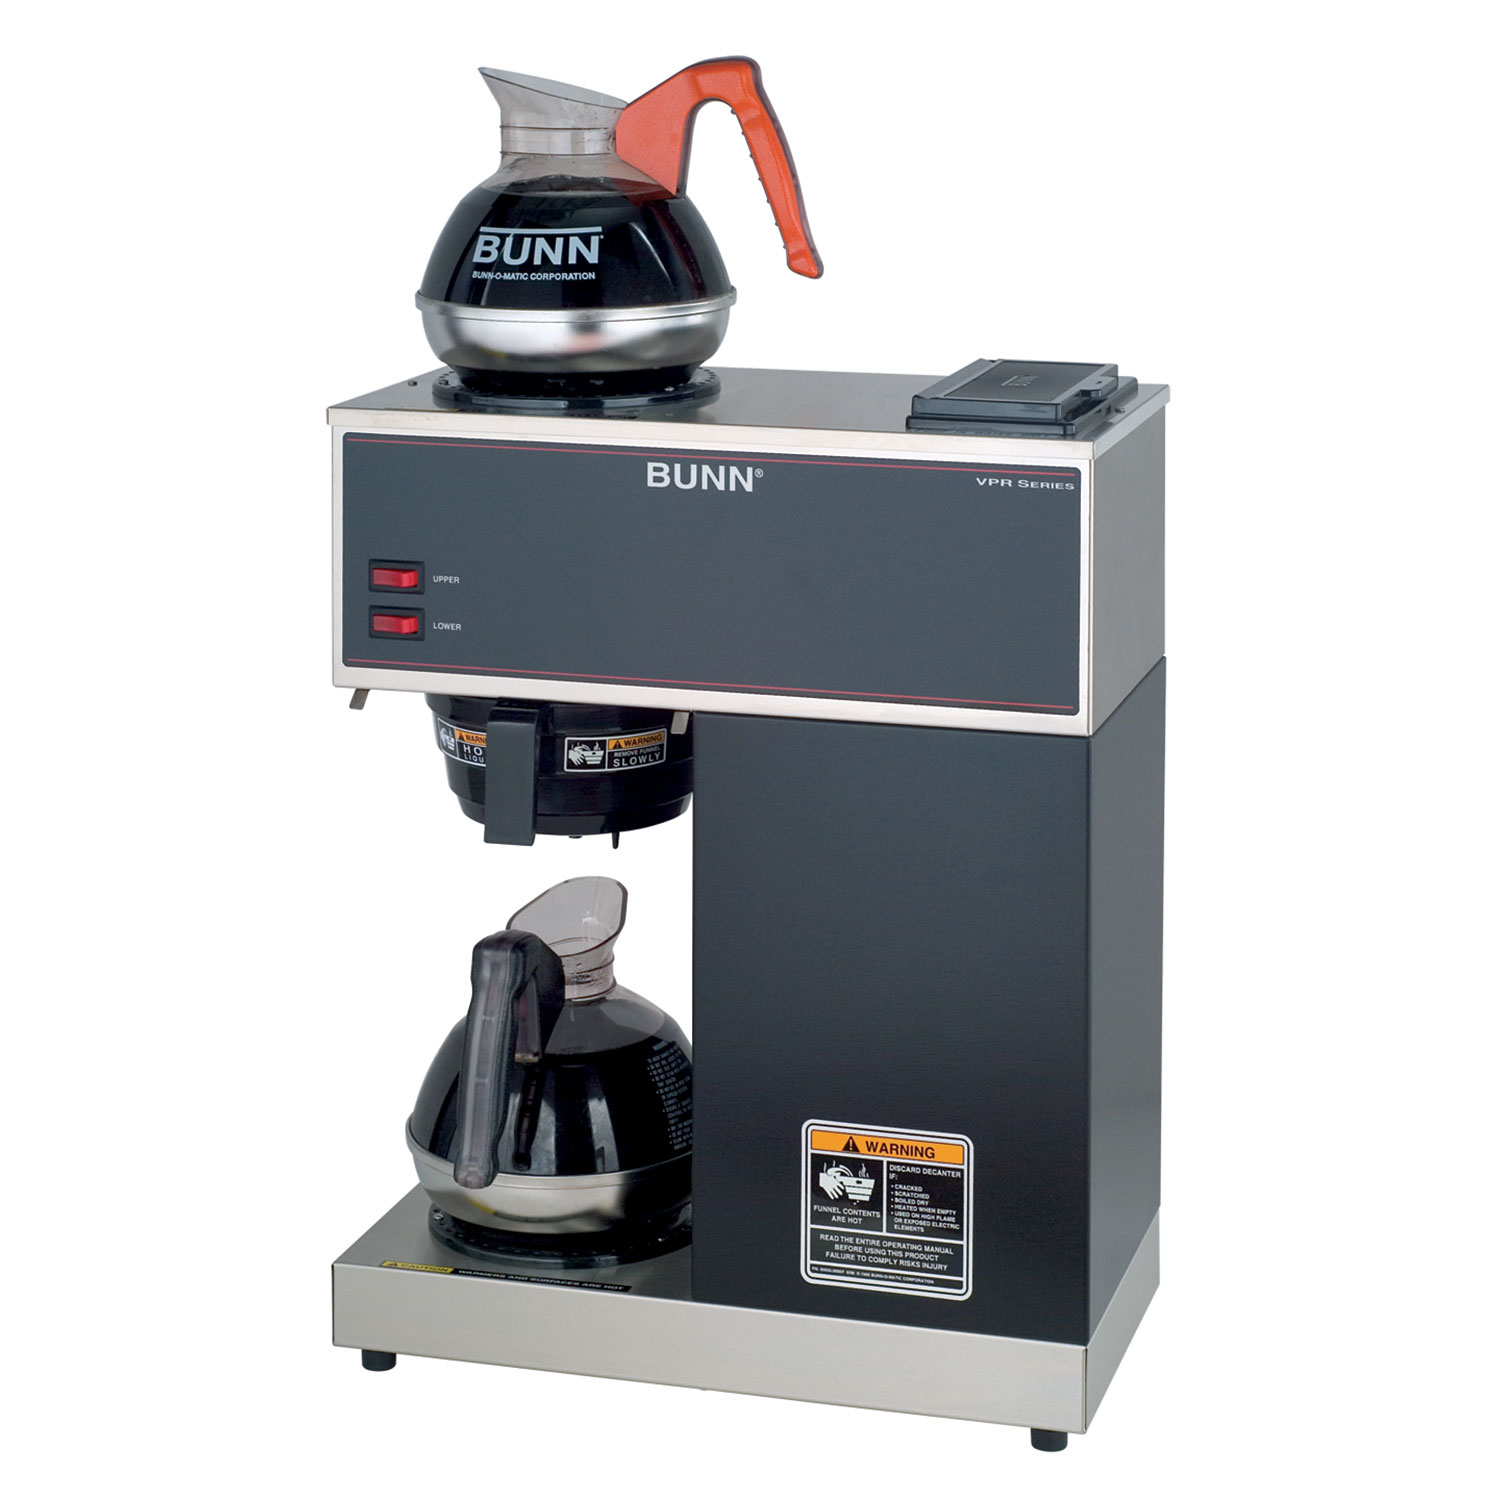 BUNN 33200.0002 coffee brewer for decanters